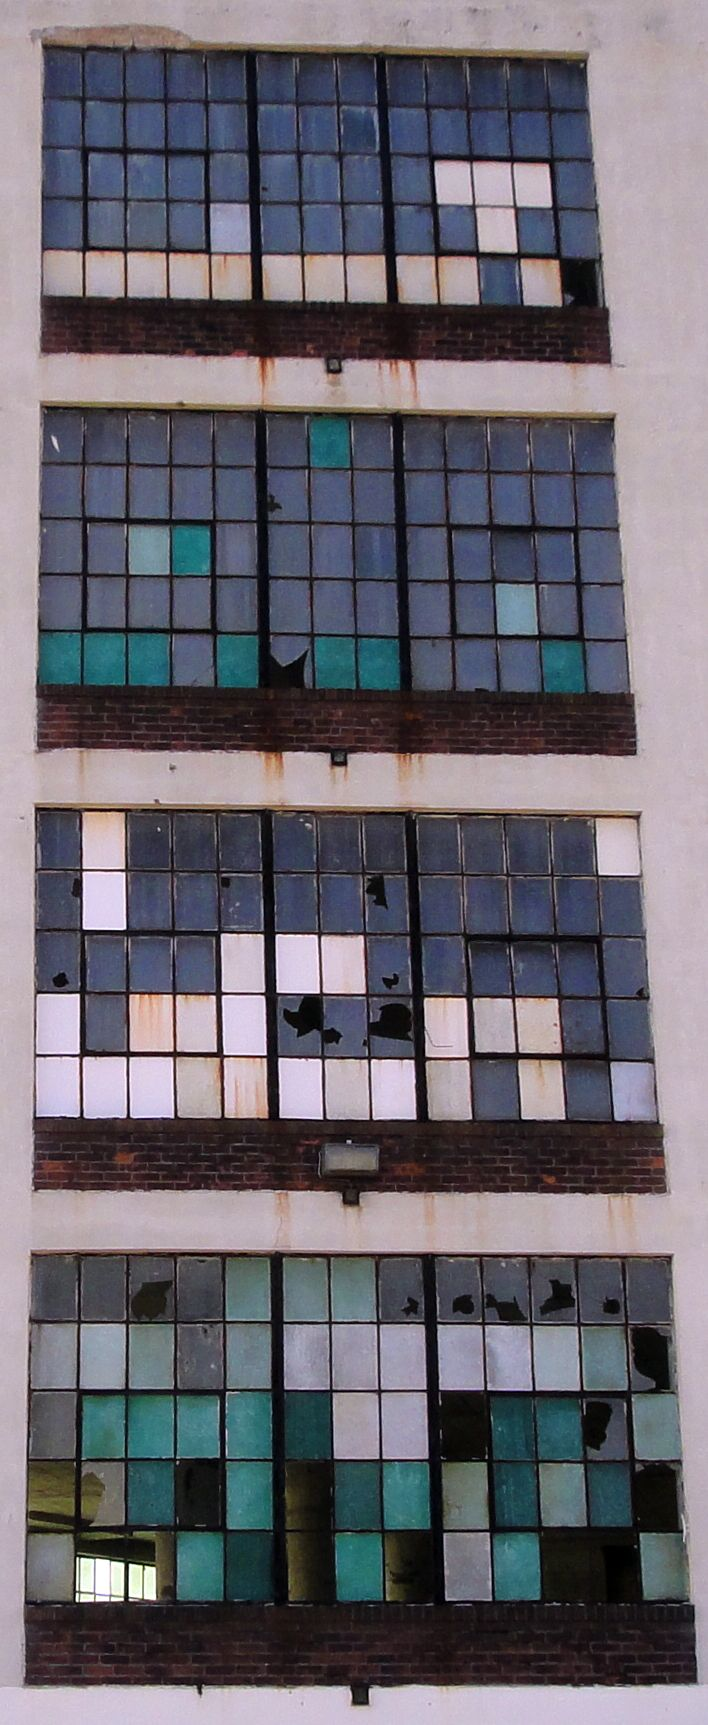 Abandoned Industrial Building, Glenwood & Oxford street, Brewerytown, North Philly.: Class Colours, Colours Glasses, Industrial Building